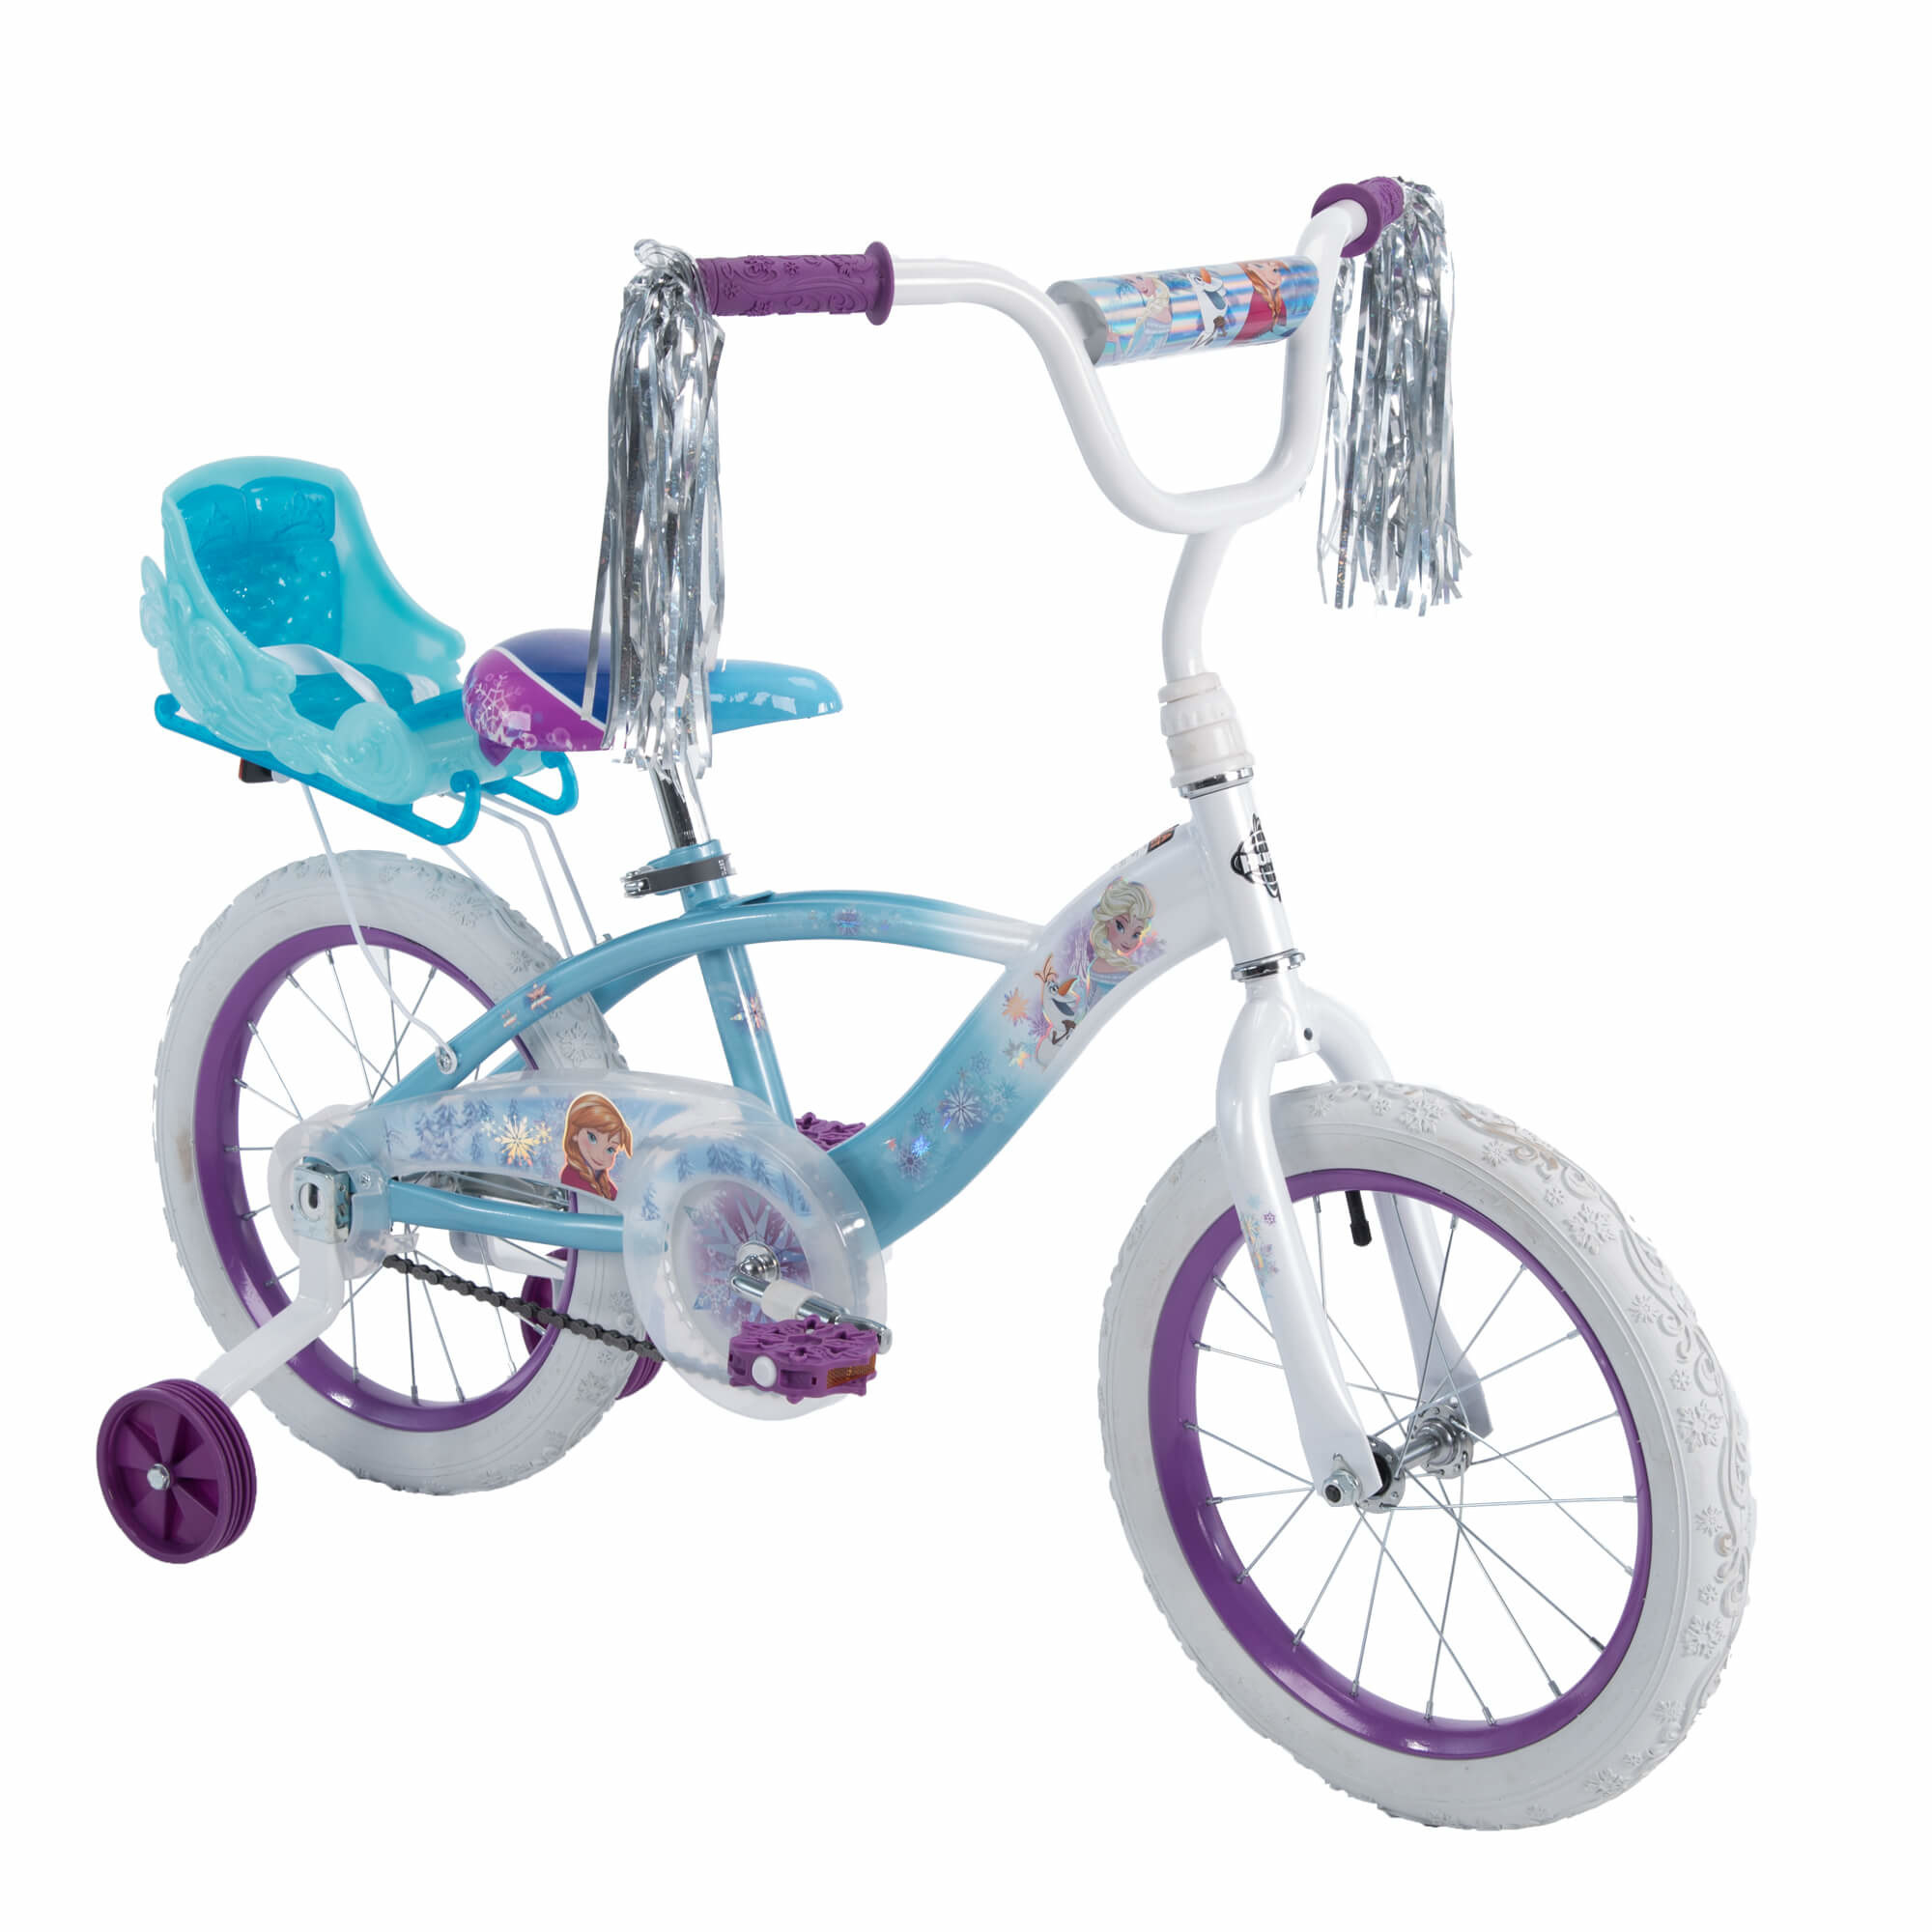 white child's bike with frozen decorations and training wheels